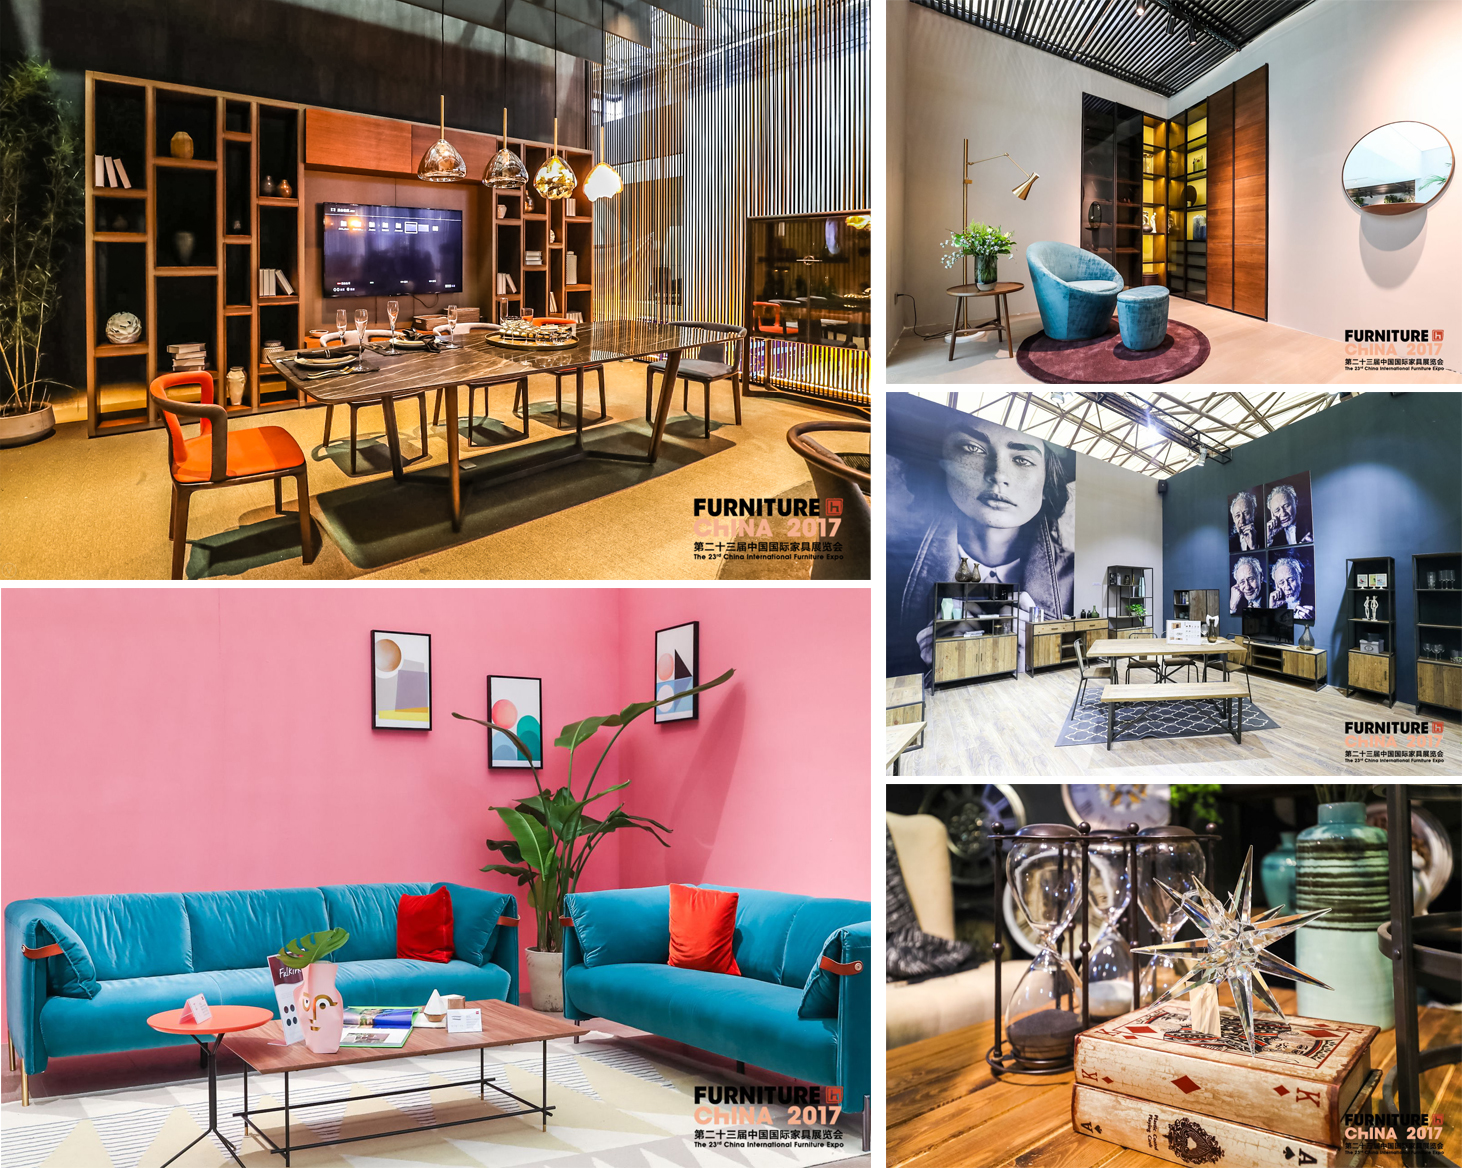 Furniture China, Maison Shanghai,26% visitor increase of 2017 Furniture China and Maison Shanghai